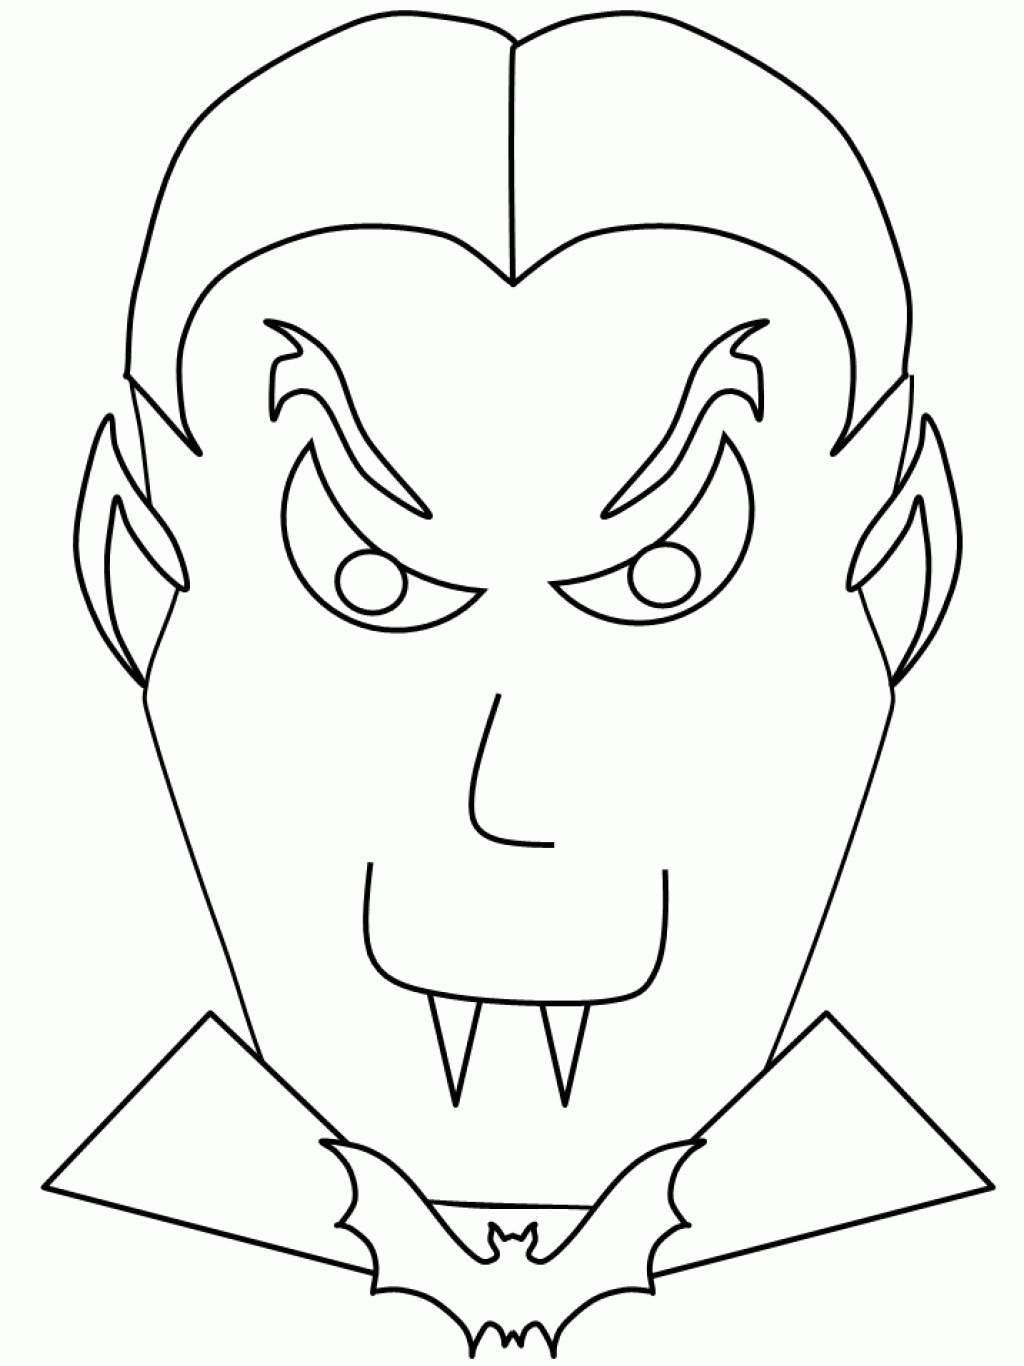 77 Top Free Printable Vampire Coloring Pages For Adults  Images